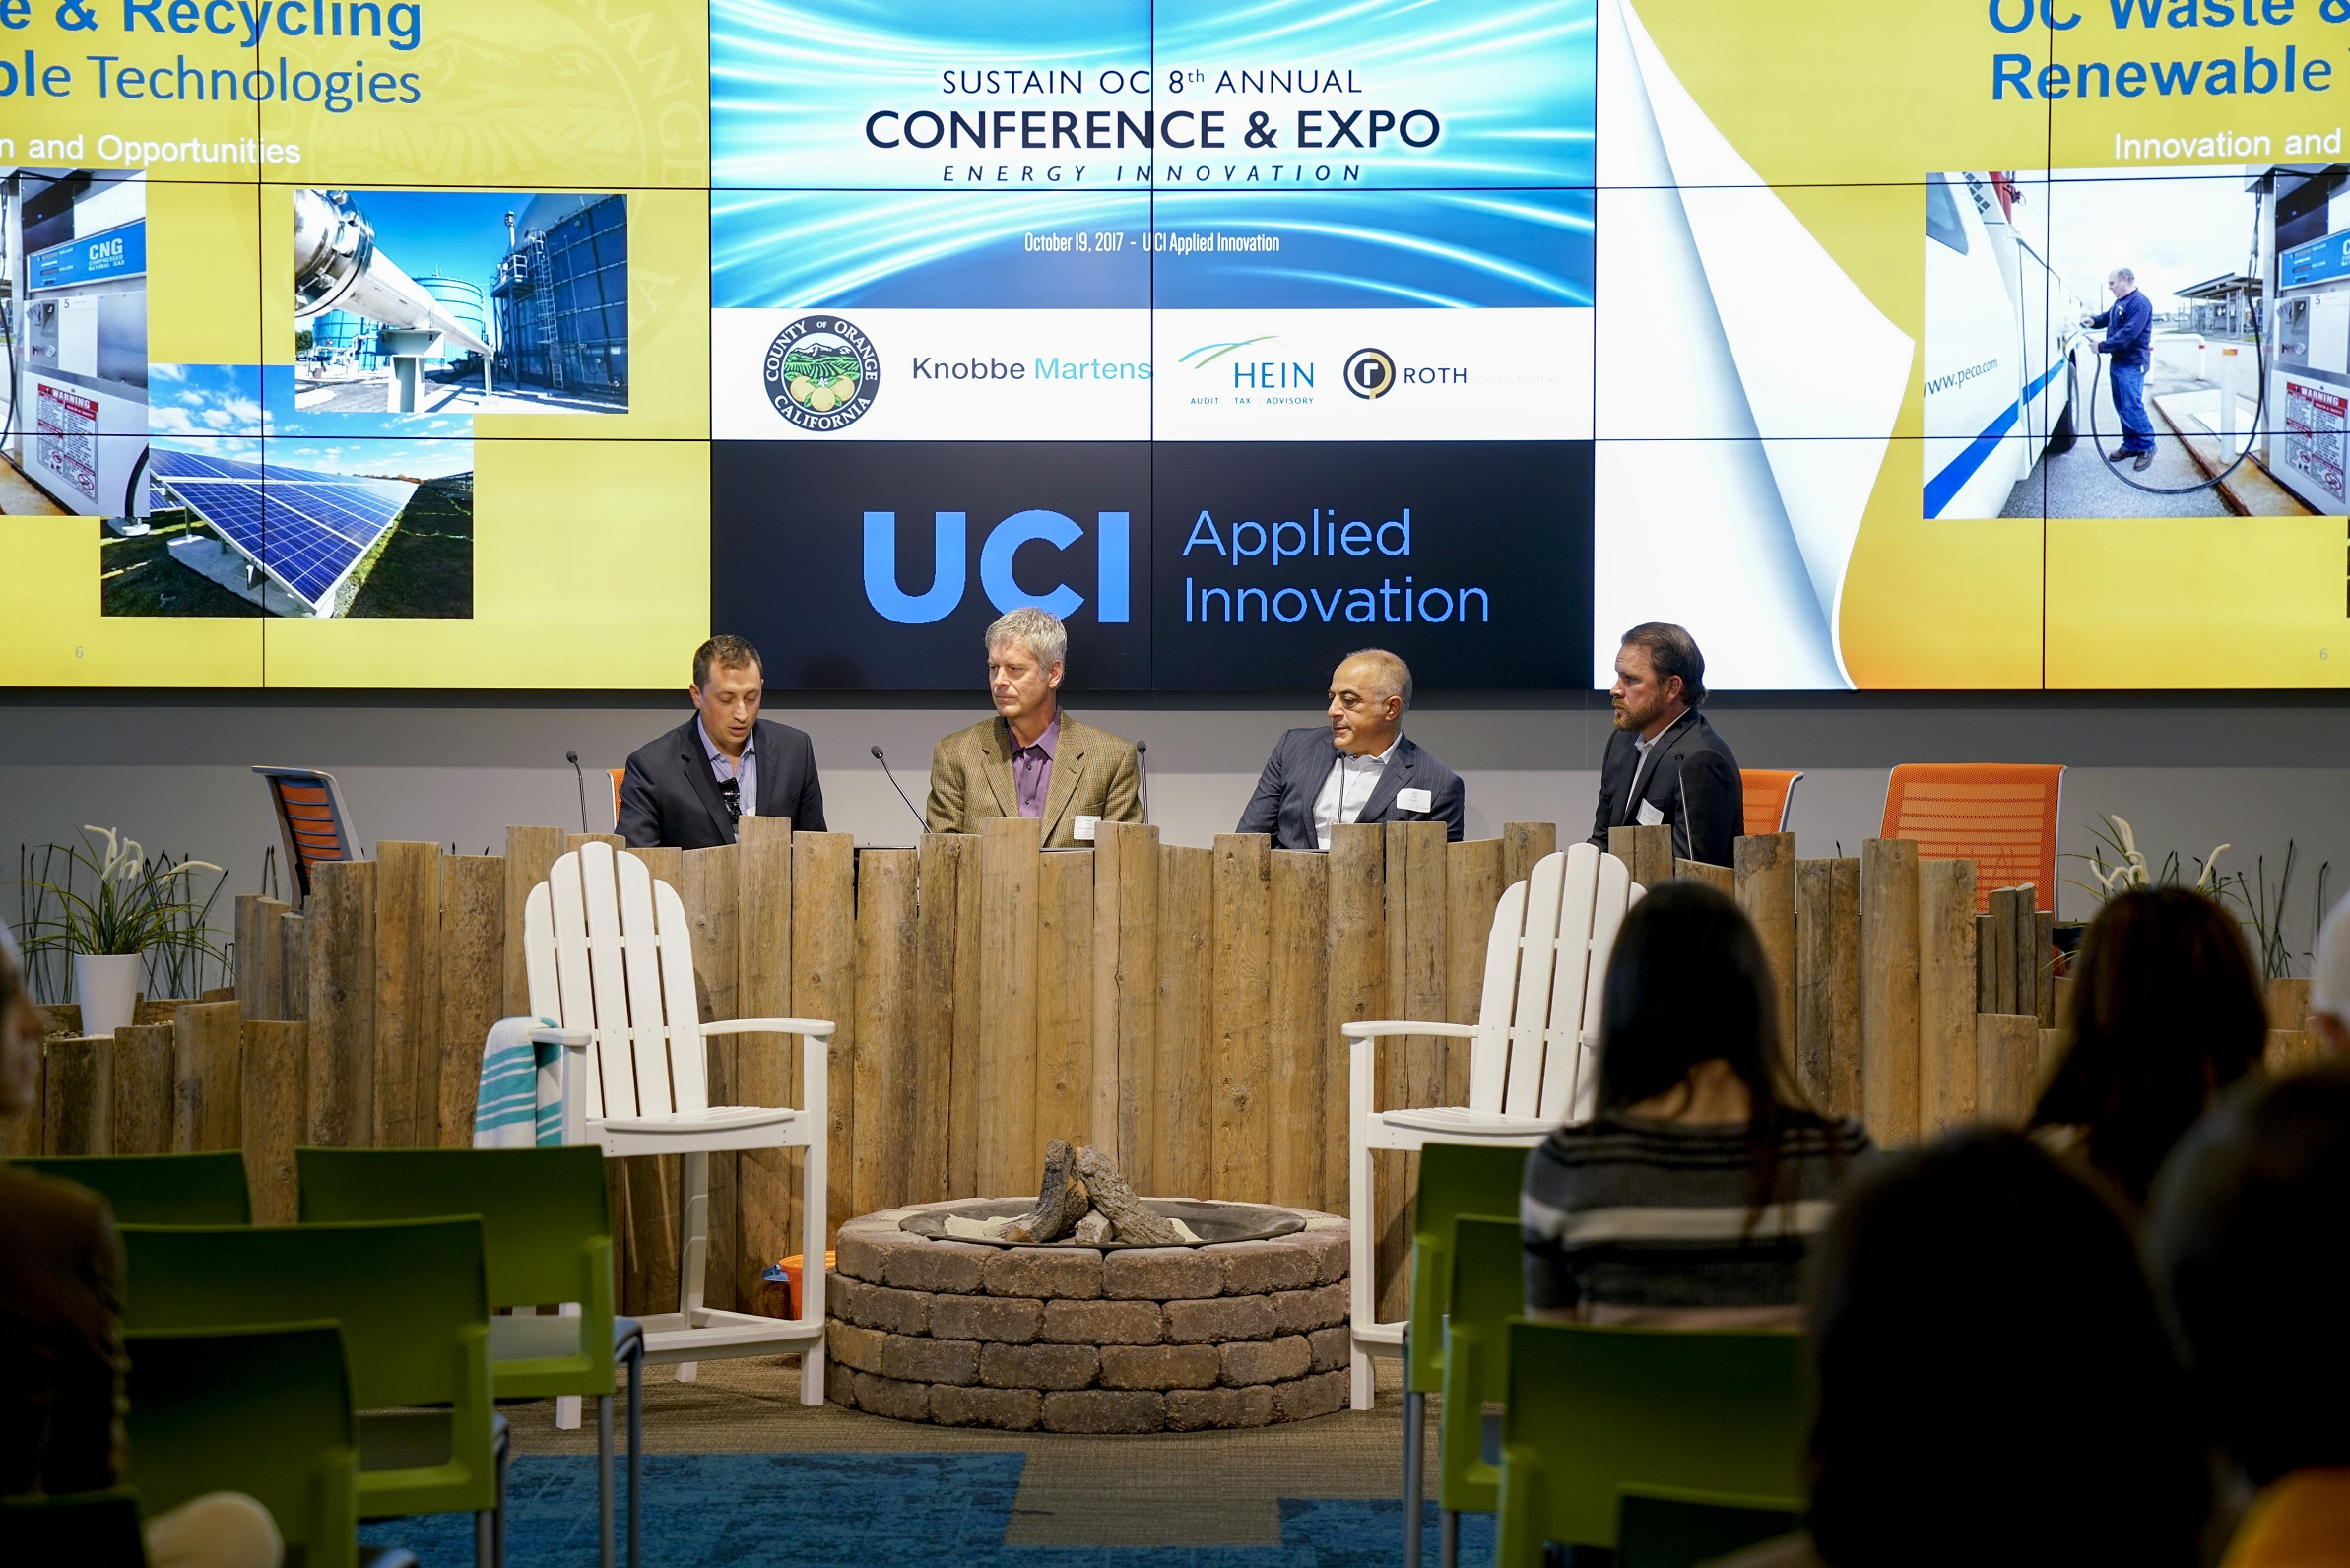 Sustain OC's Annual Conference and Expo Showcases Energy Innovation Initiatives and Entrepreneurial Opportunities